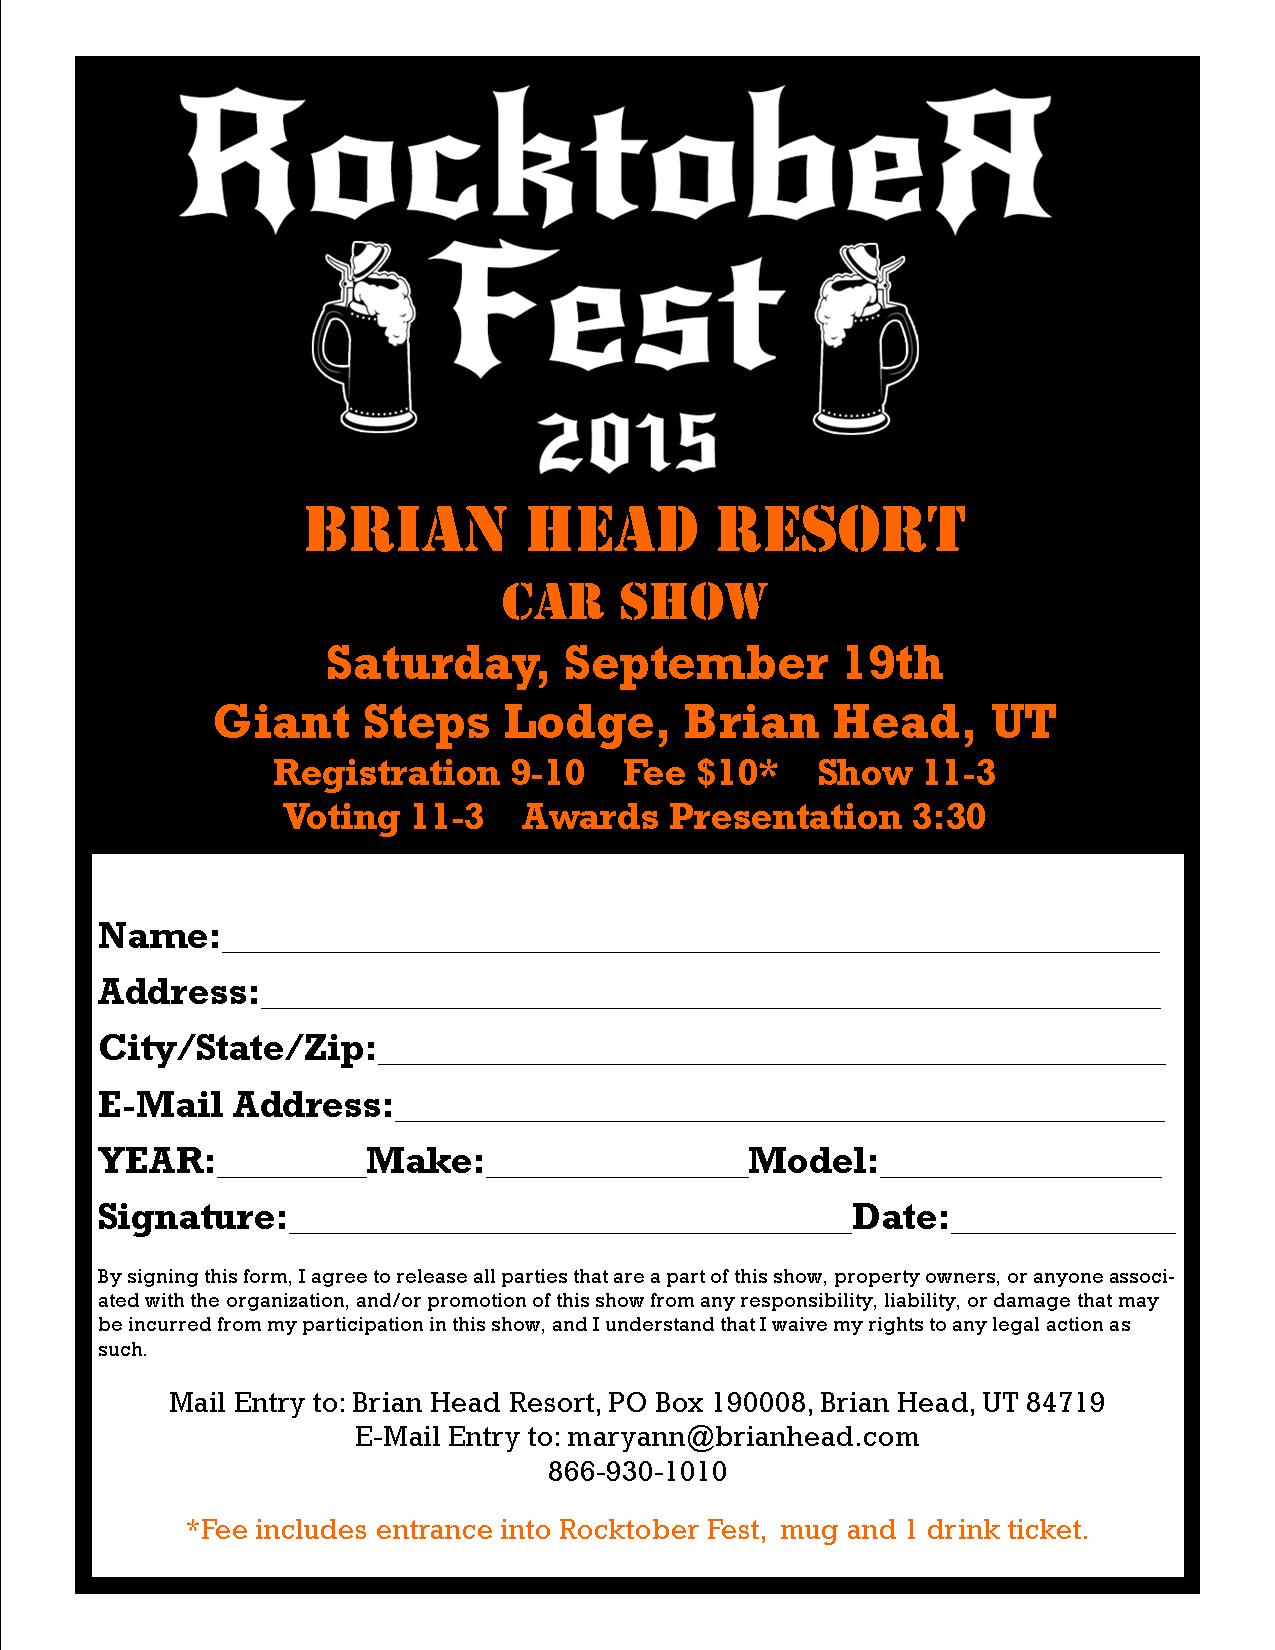 Car Show Registration & Ticket Sales on your Website